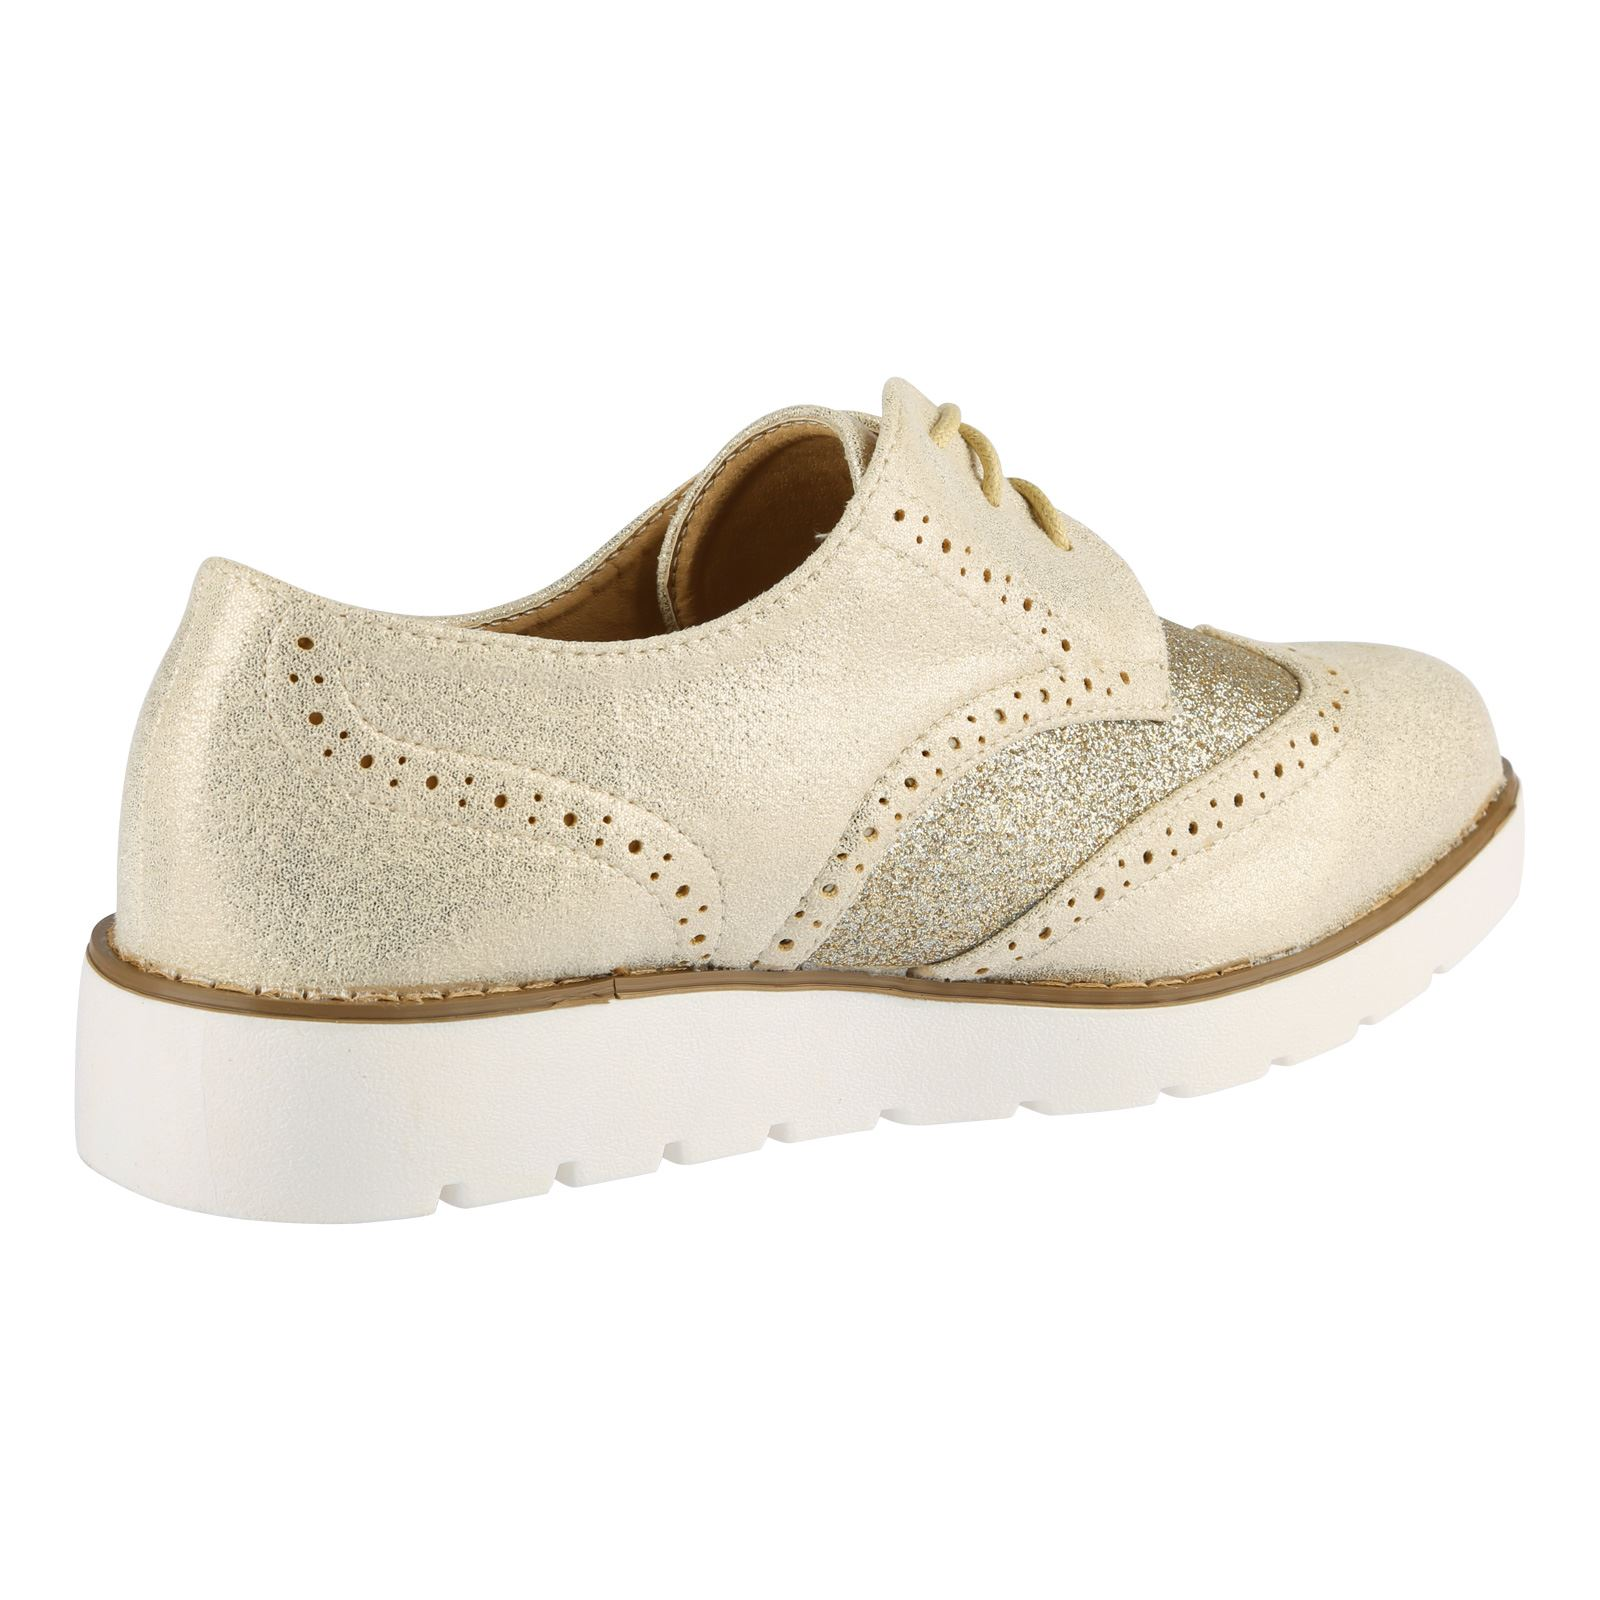 Two Tone Oxford Shoes Womens